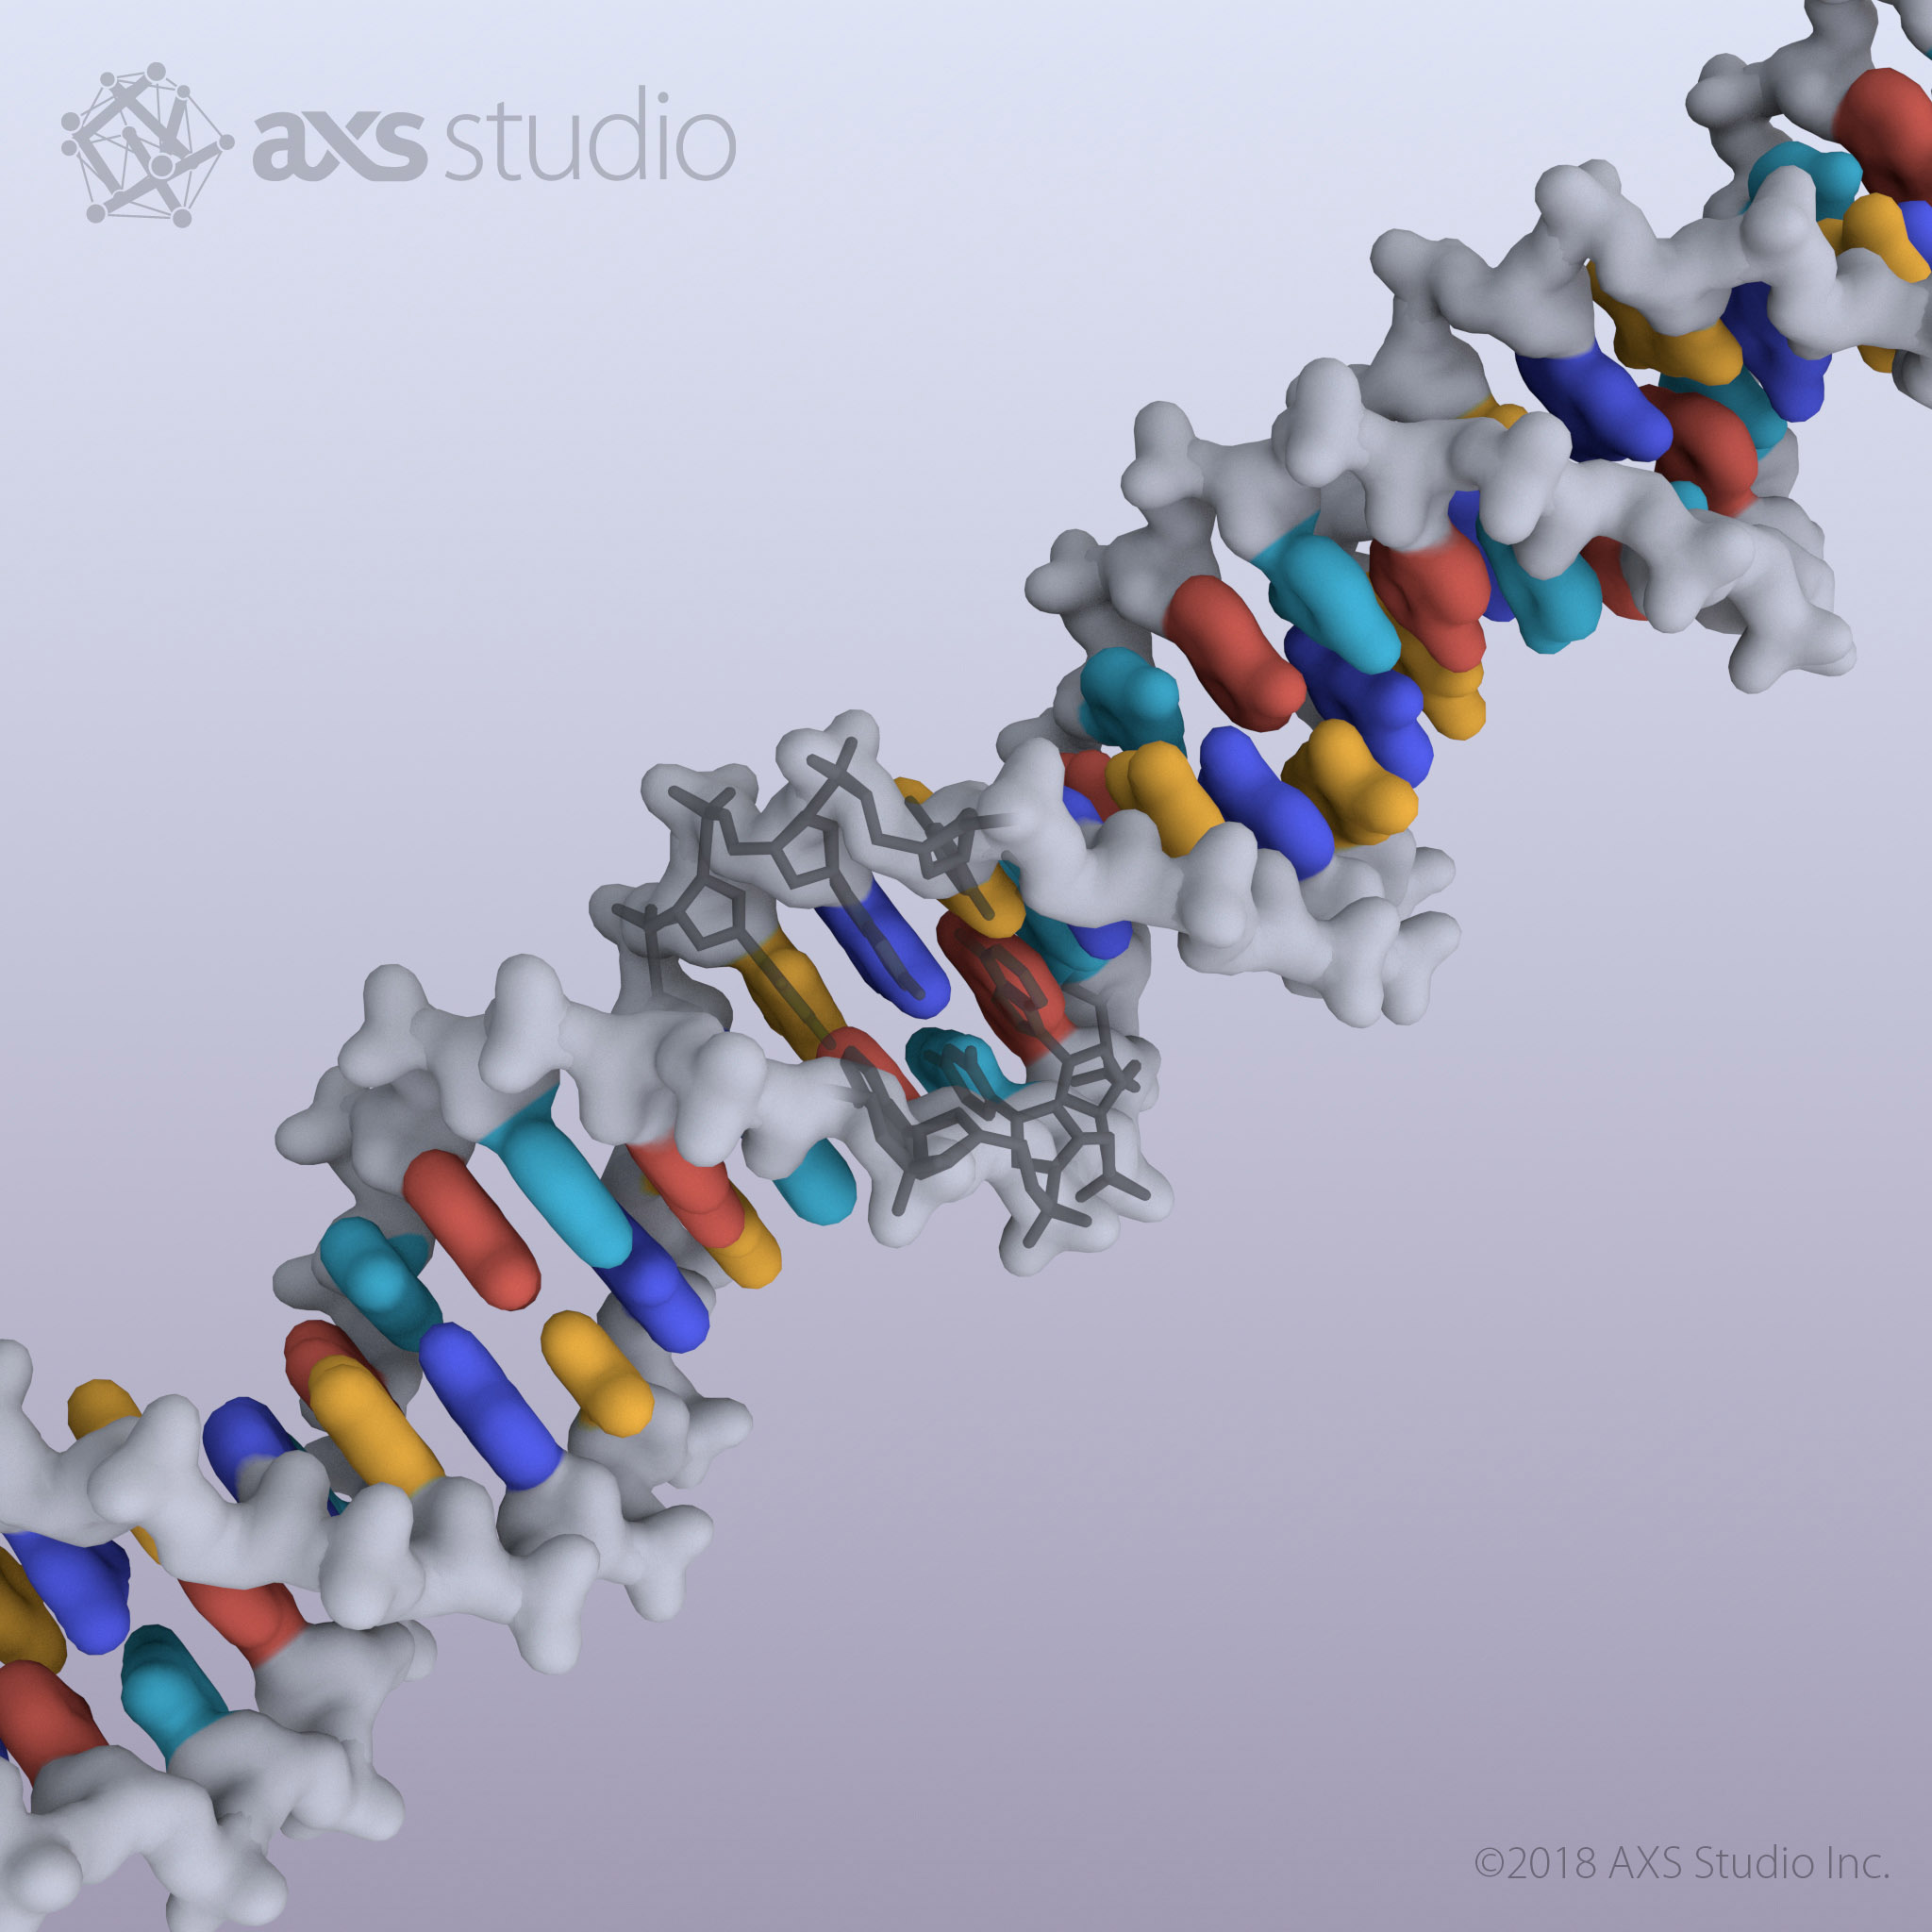 axs-studio-dna-virtual-reality-vr-double-helix-01